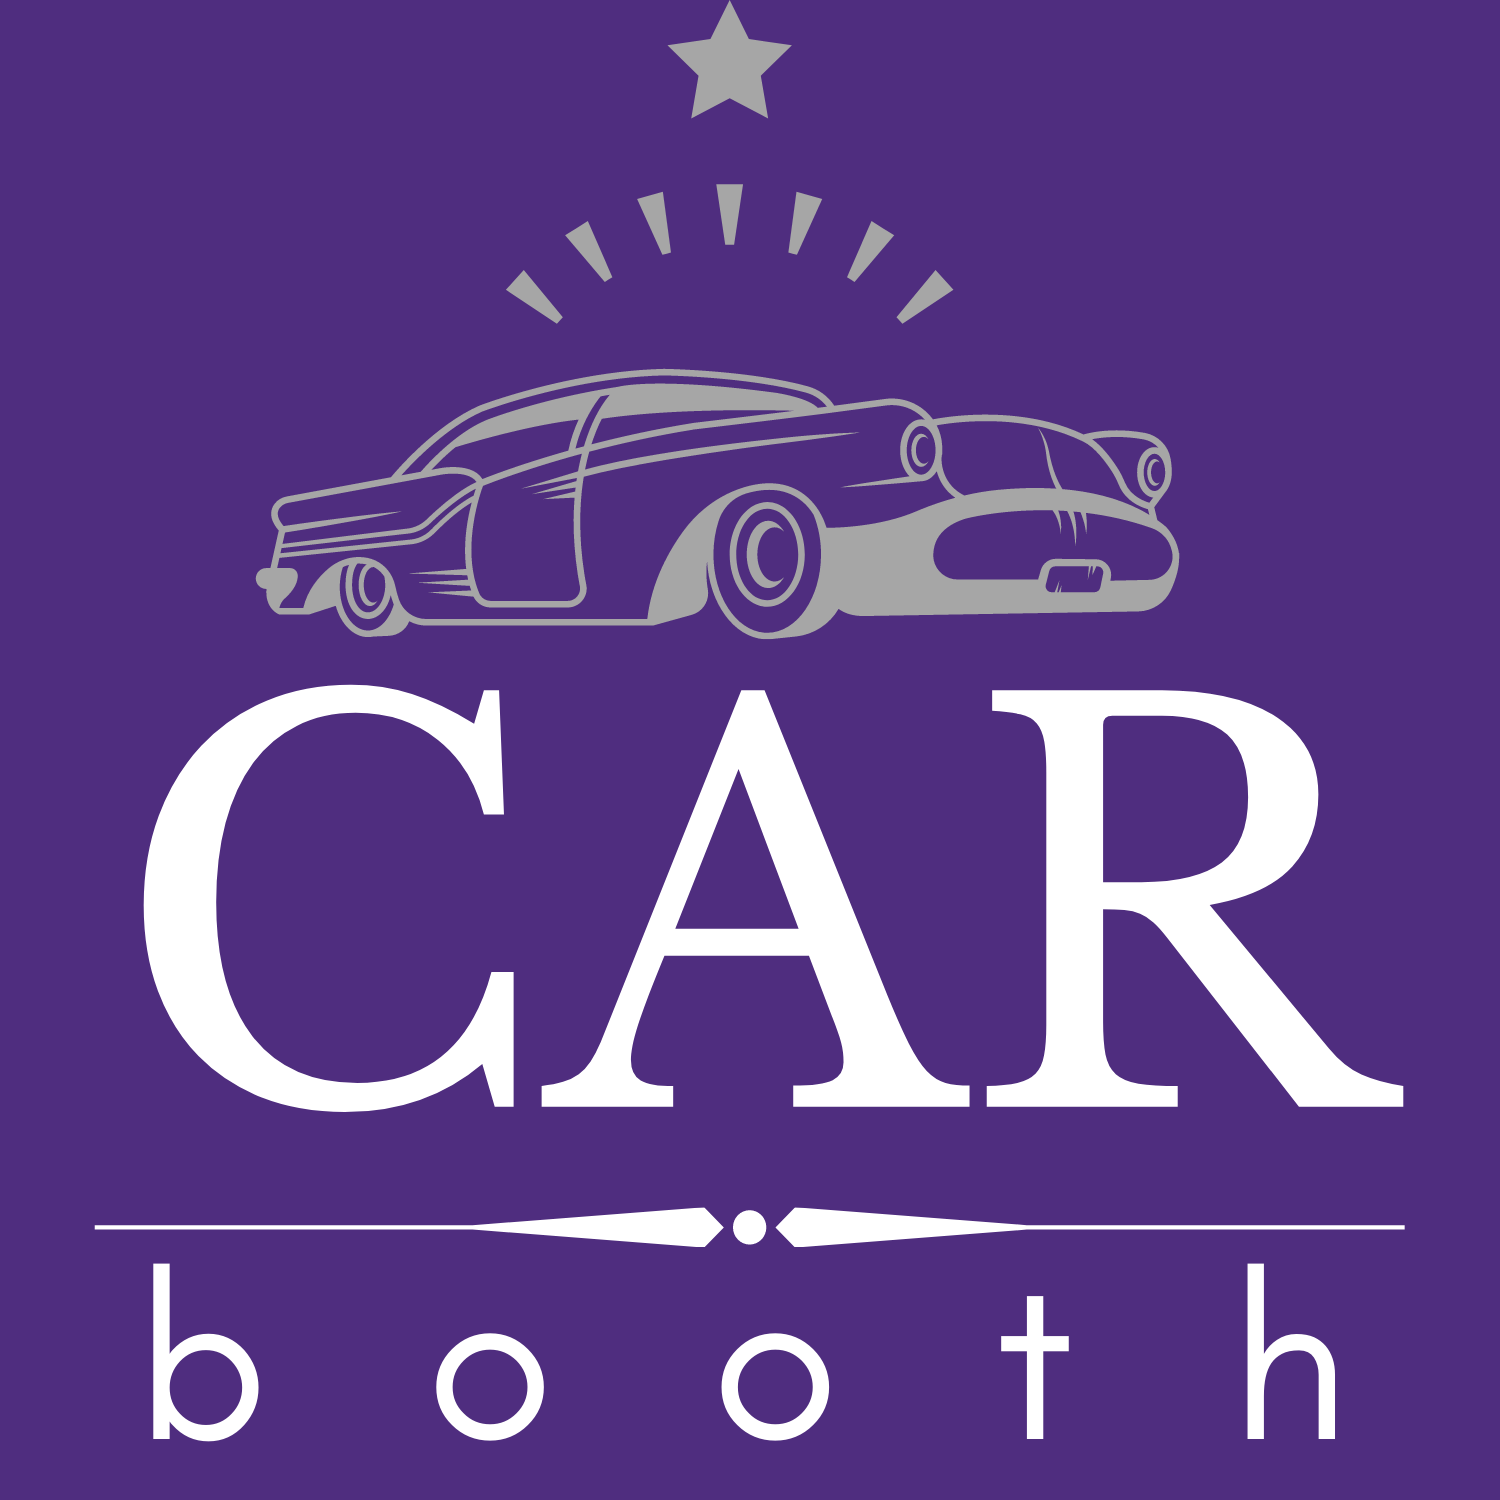 Cars booth logo - MNP Techs Client